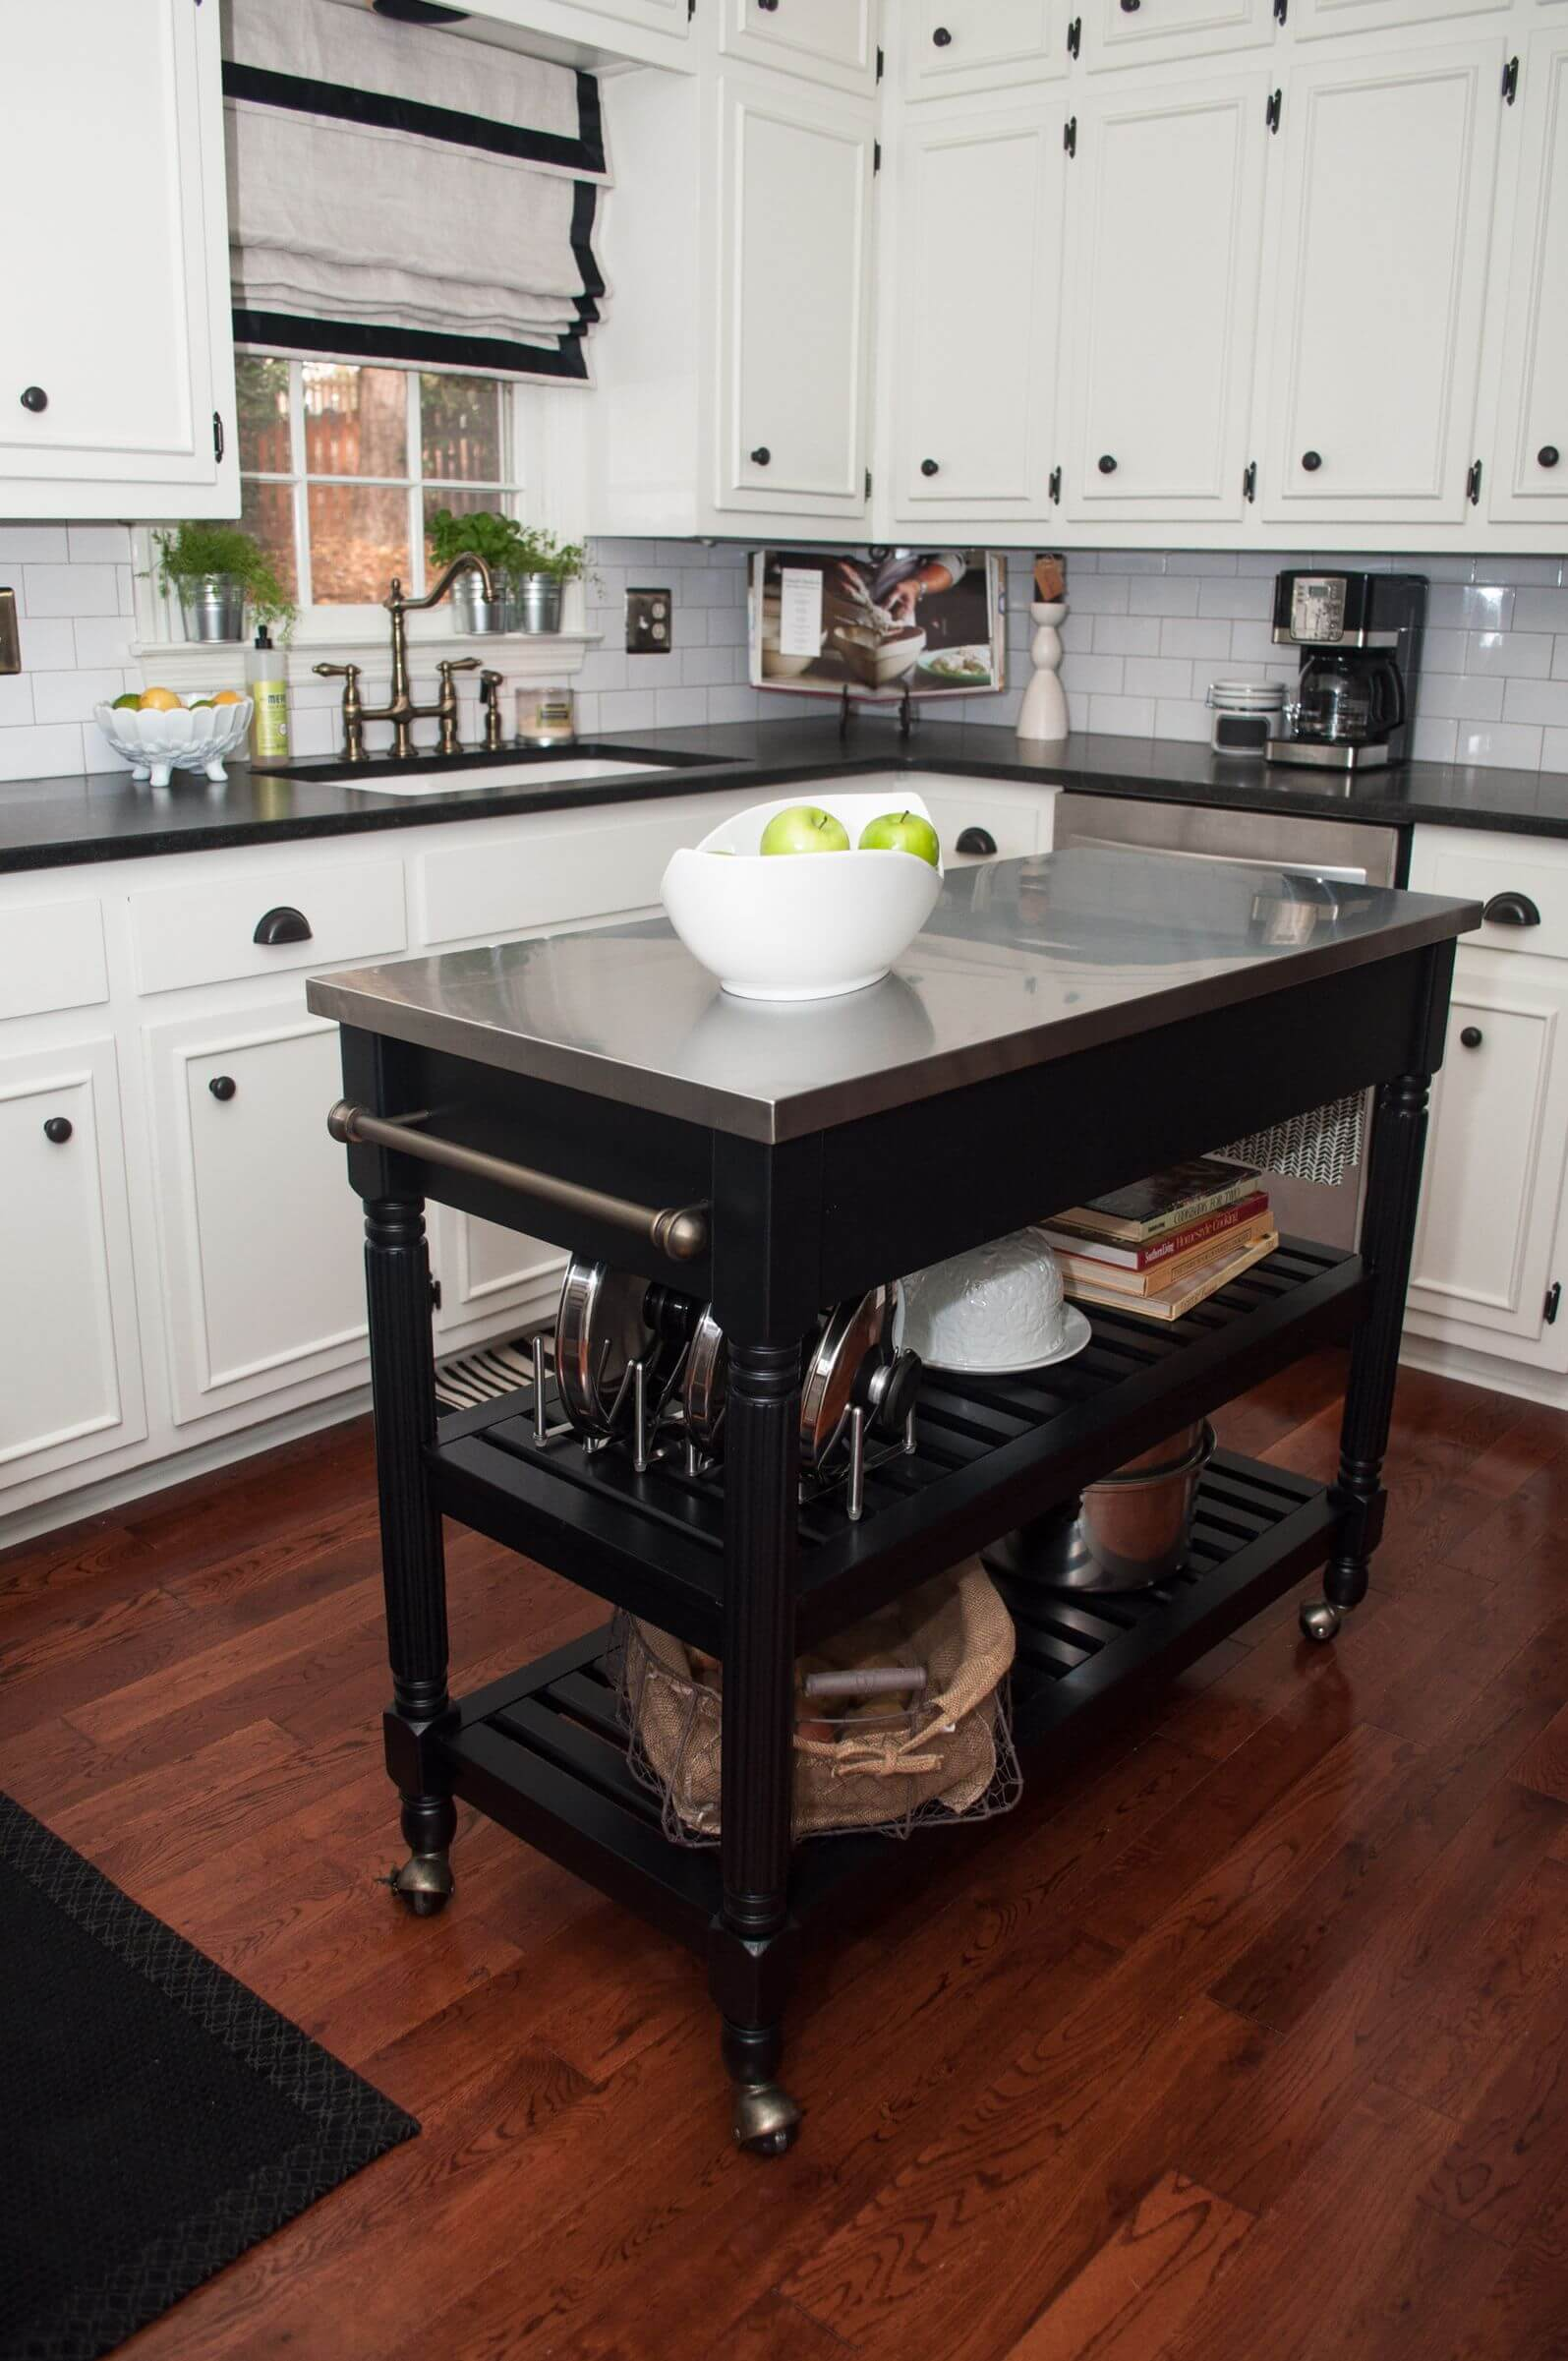 kitchen workbench garbage can 60 types of small islands carts on wheels 2019 white with dark portable island